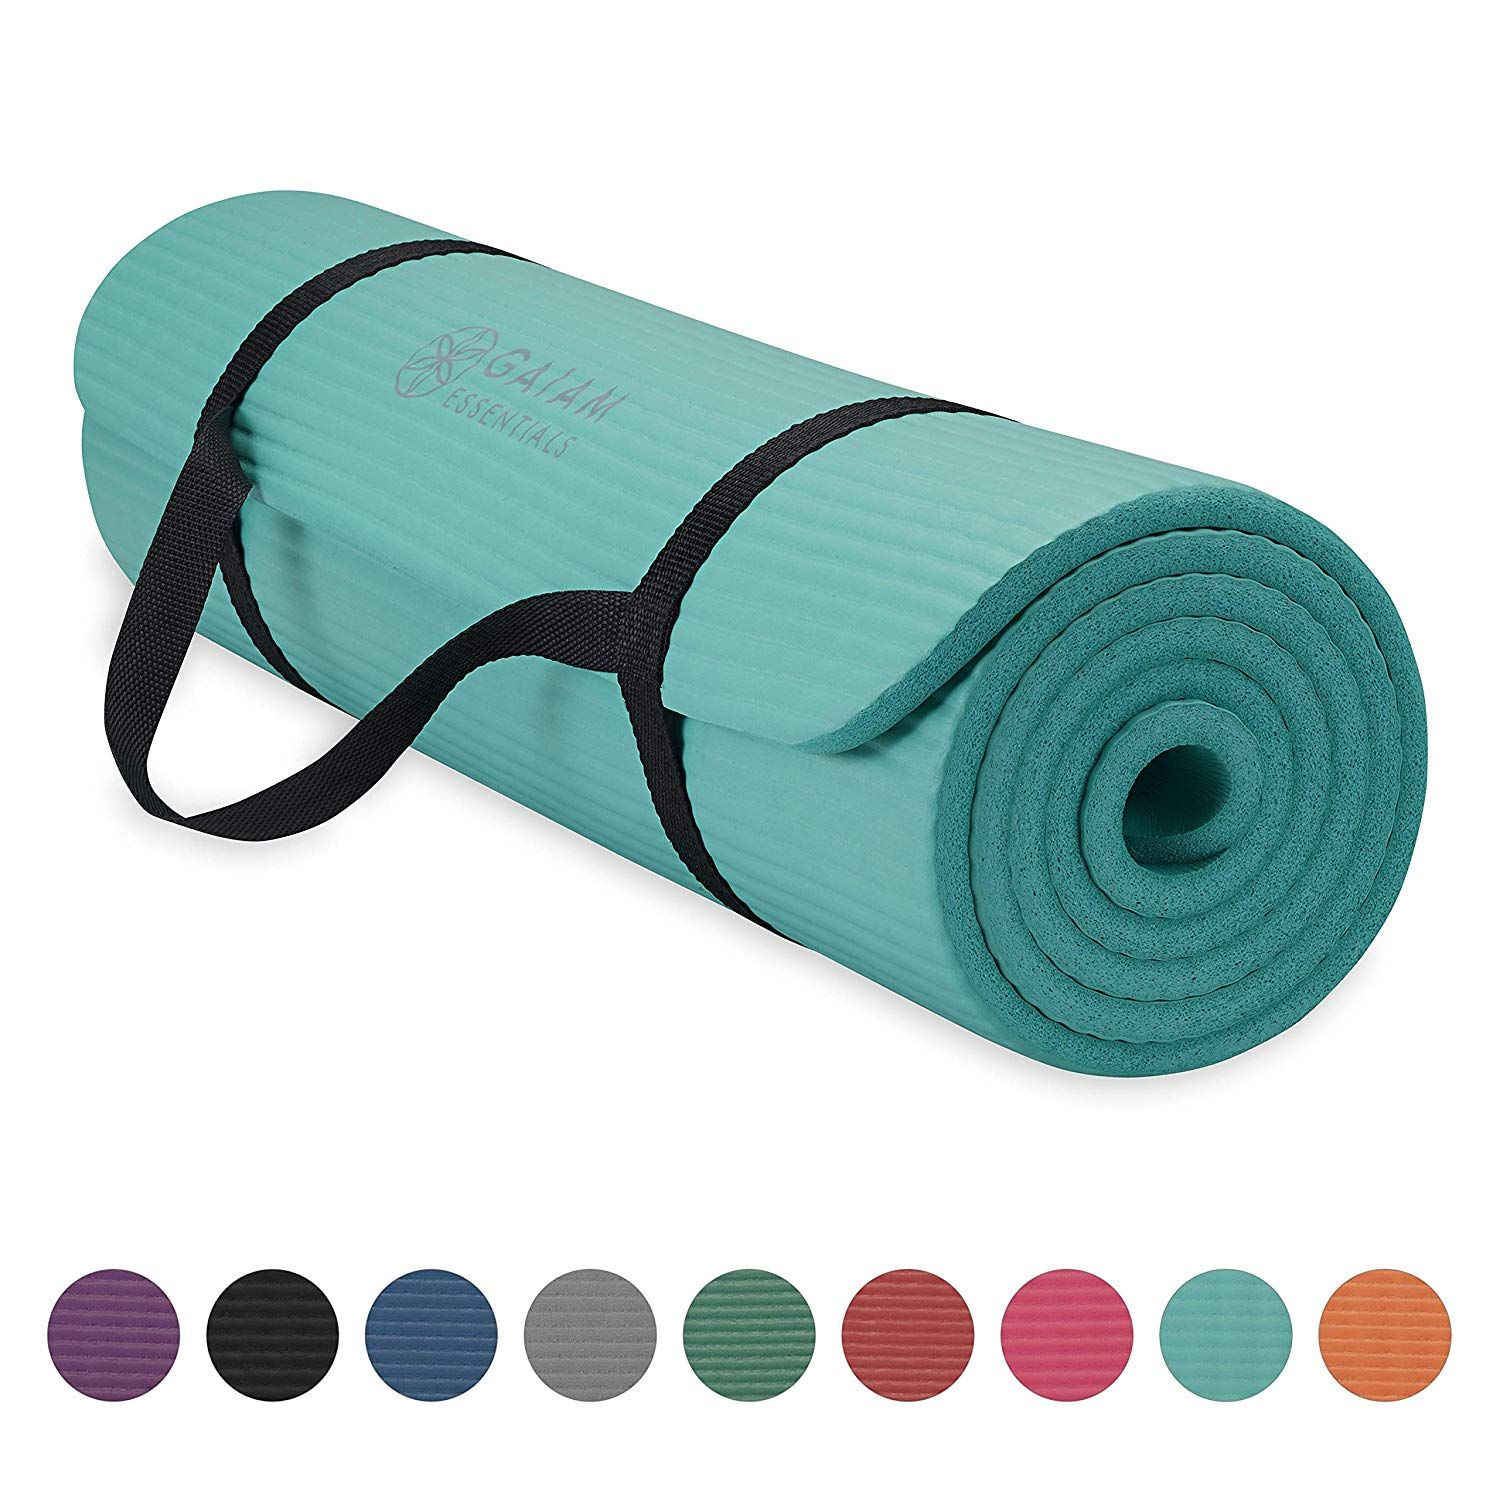 Gaiam Essentials Thick Yoga Mat Fitness And Exercise Mat With Easy Cinch Yoga Mat Carrier Strap Teal 72 L X 24 W In 2020 Thick Yoga Mats Yoga Mat Carrier Mat Exercises